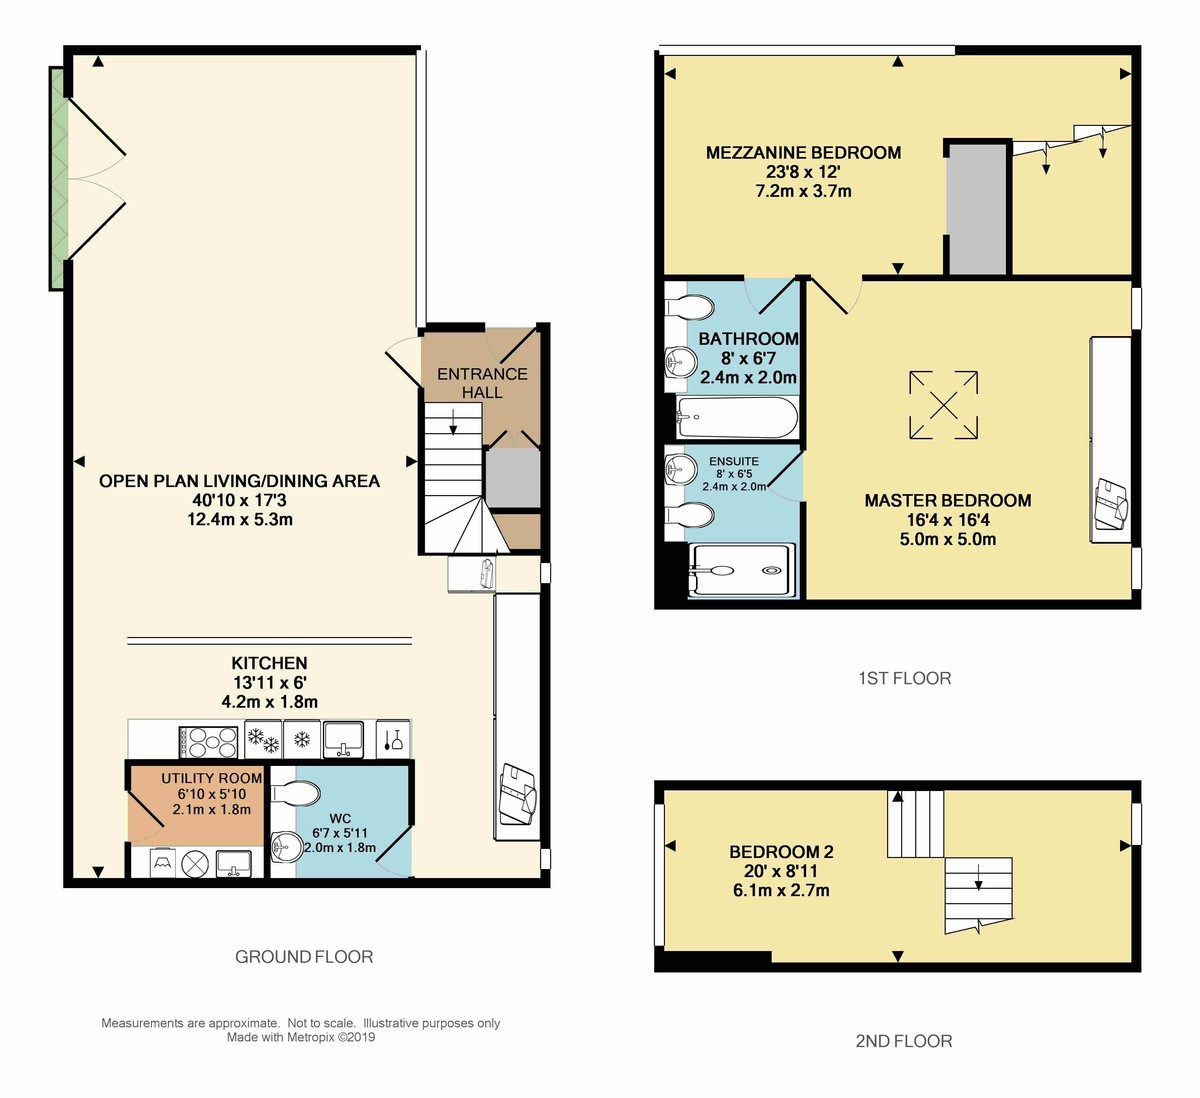 The Brewhouse, 8 Royal William Yard, Stonehouse, Plymouth, PL1 3QQ floorplan